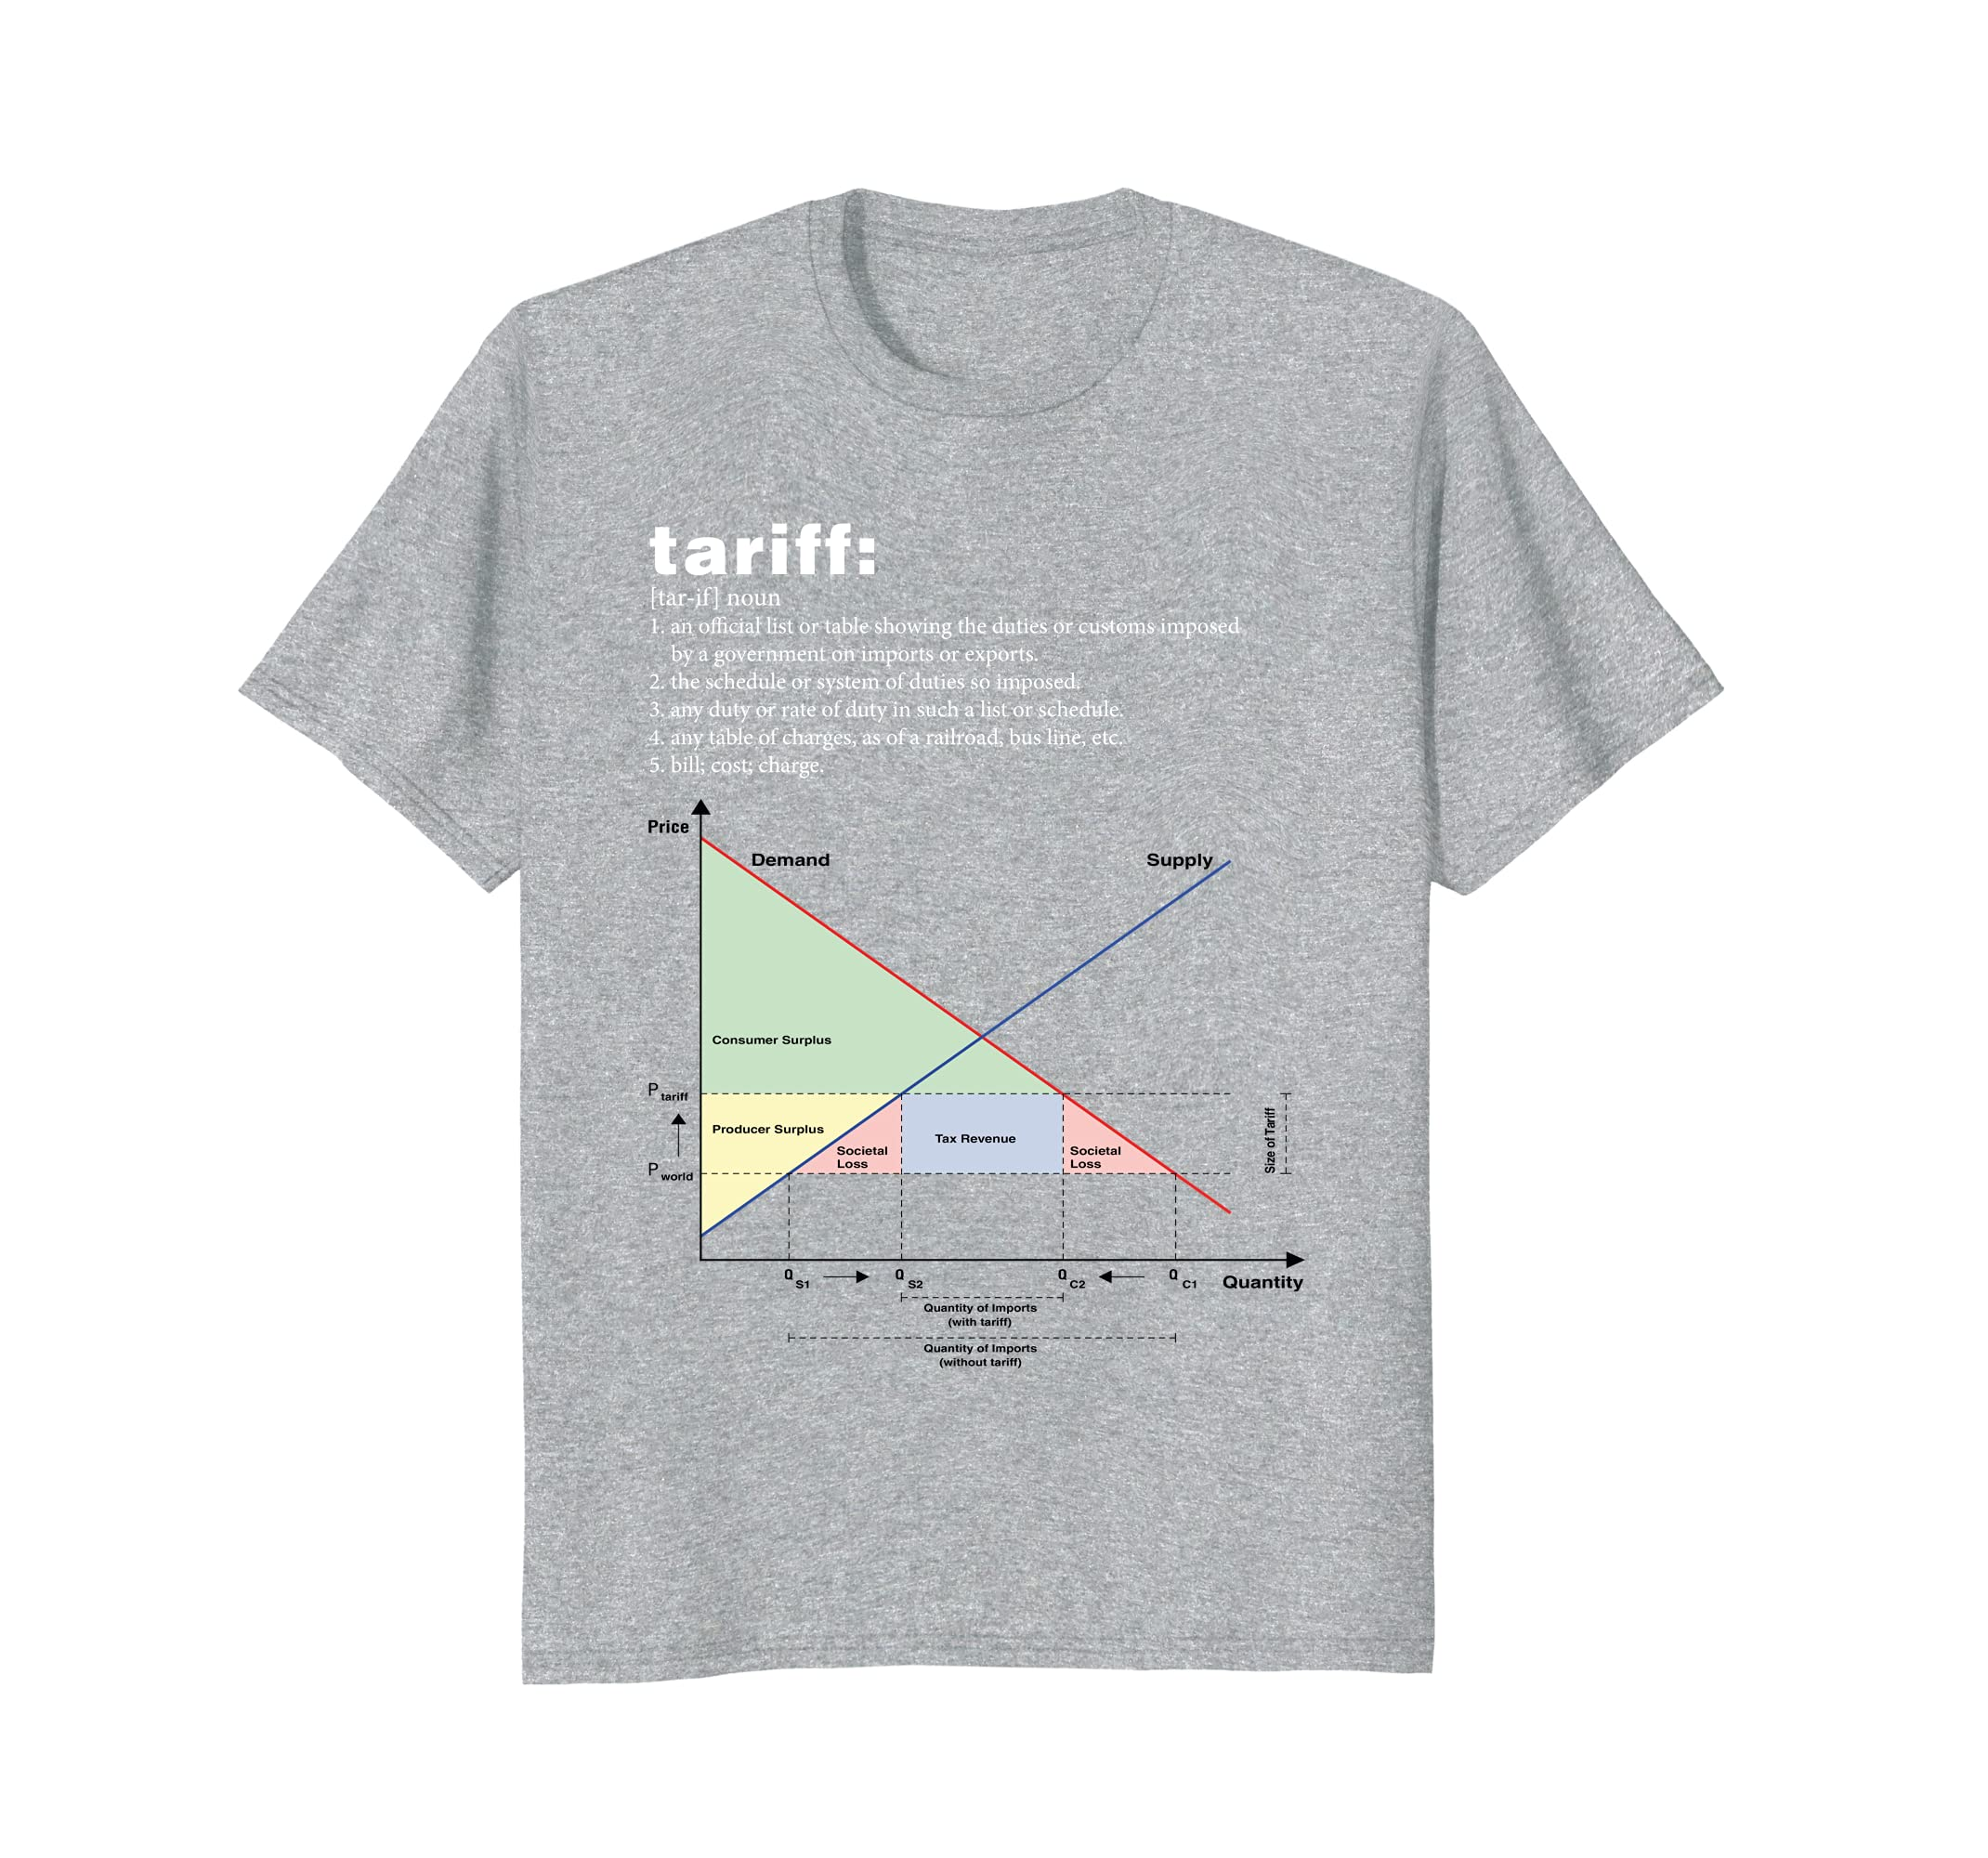 Amazon com: Economic Tariff Diagram T Shirt: Clothing